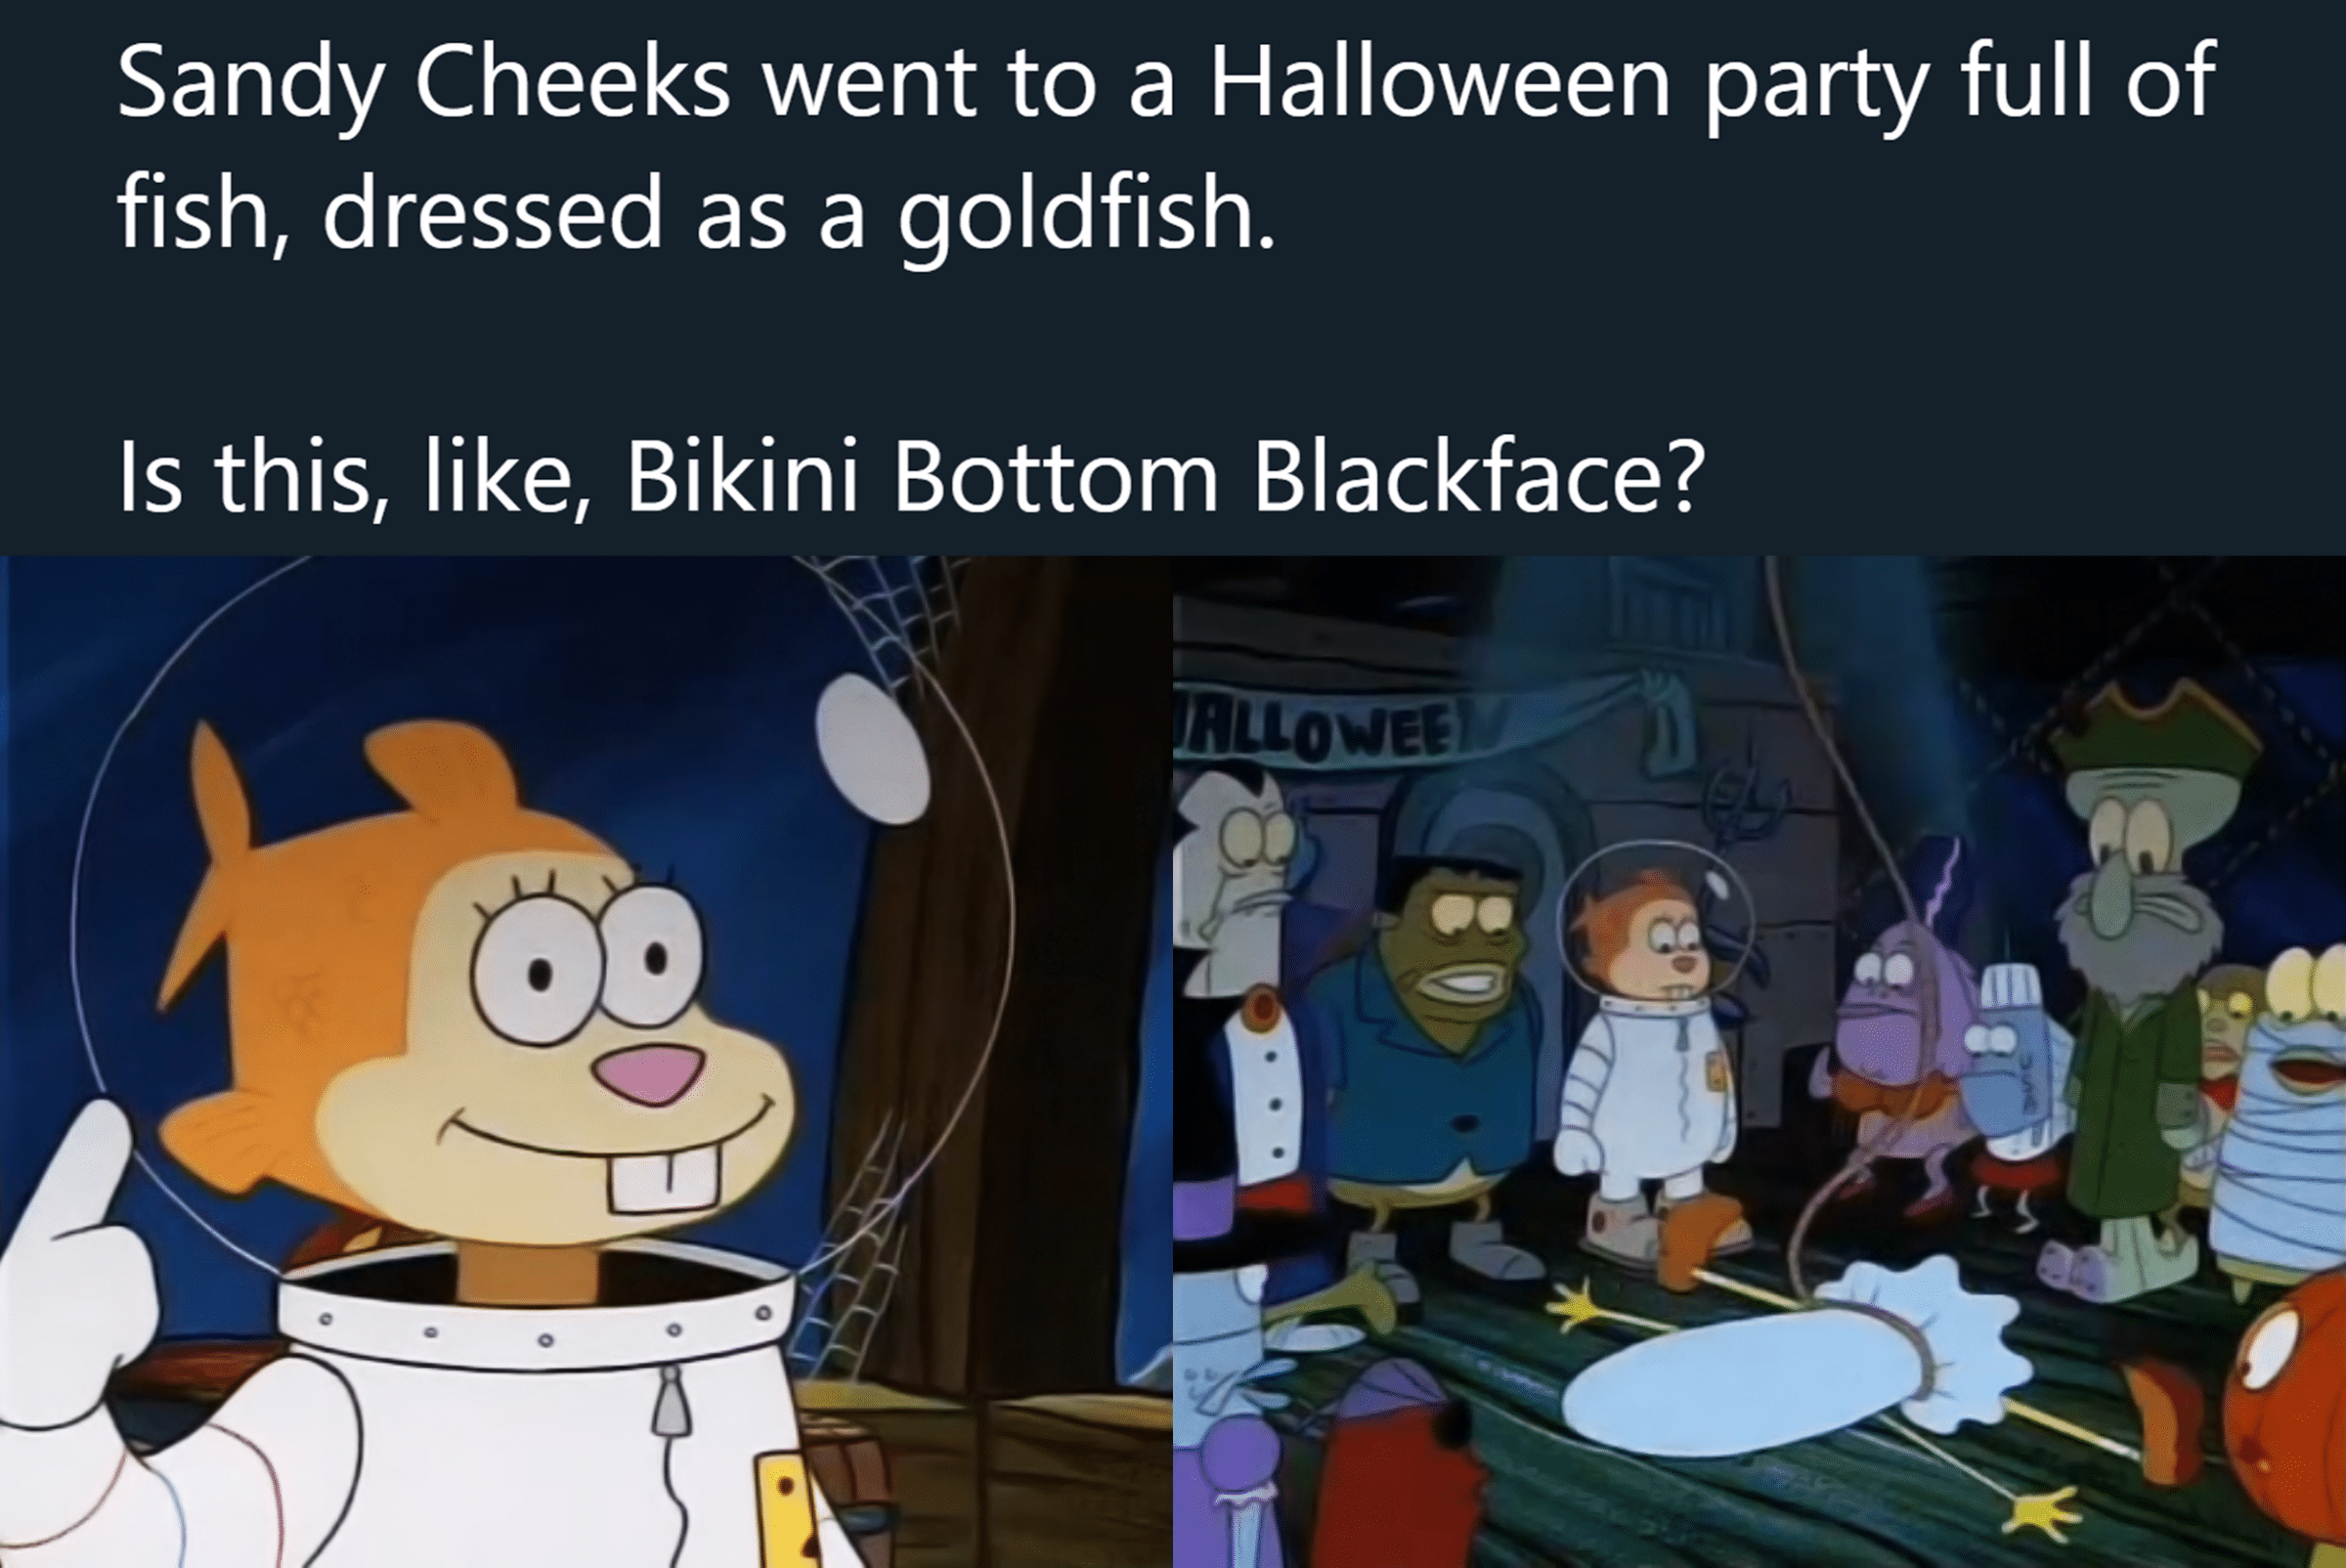 Spongebob, Sandy, Bikini Bottom, Squidward, Spongebob, Patrick Spongebob Memes Spongebob, Sandy, Bikini Bottom, Squidward, Spongebob, Patrick text: Sandy Cheeks went to a Halloween party full of fish, dressed as a goldfish. Is this, like, Bikini Bottom Blackface?